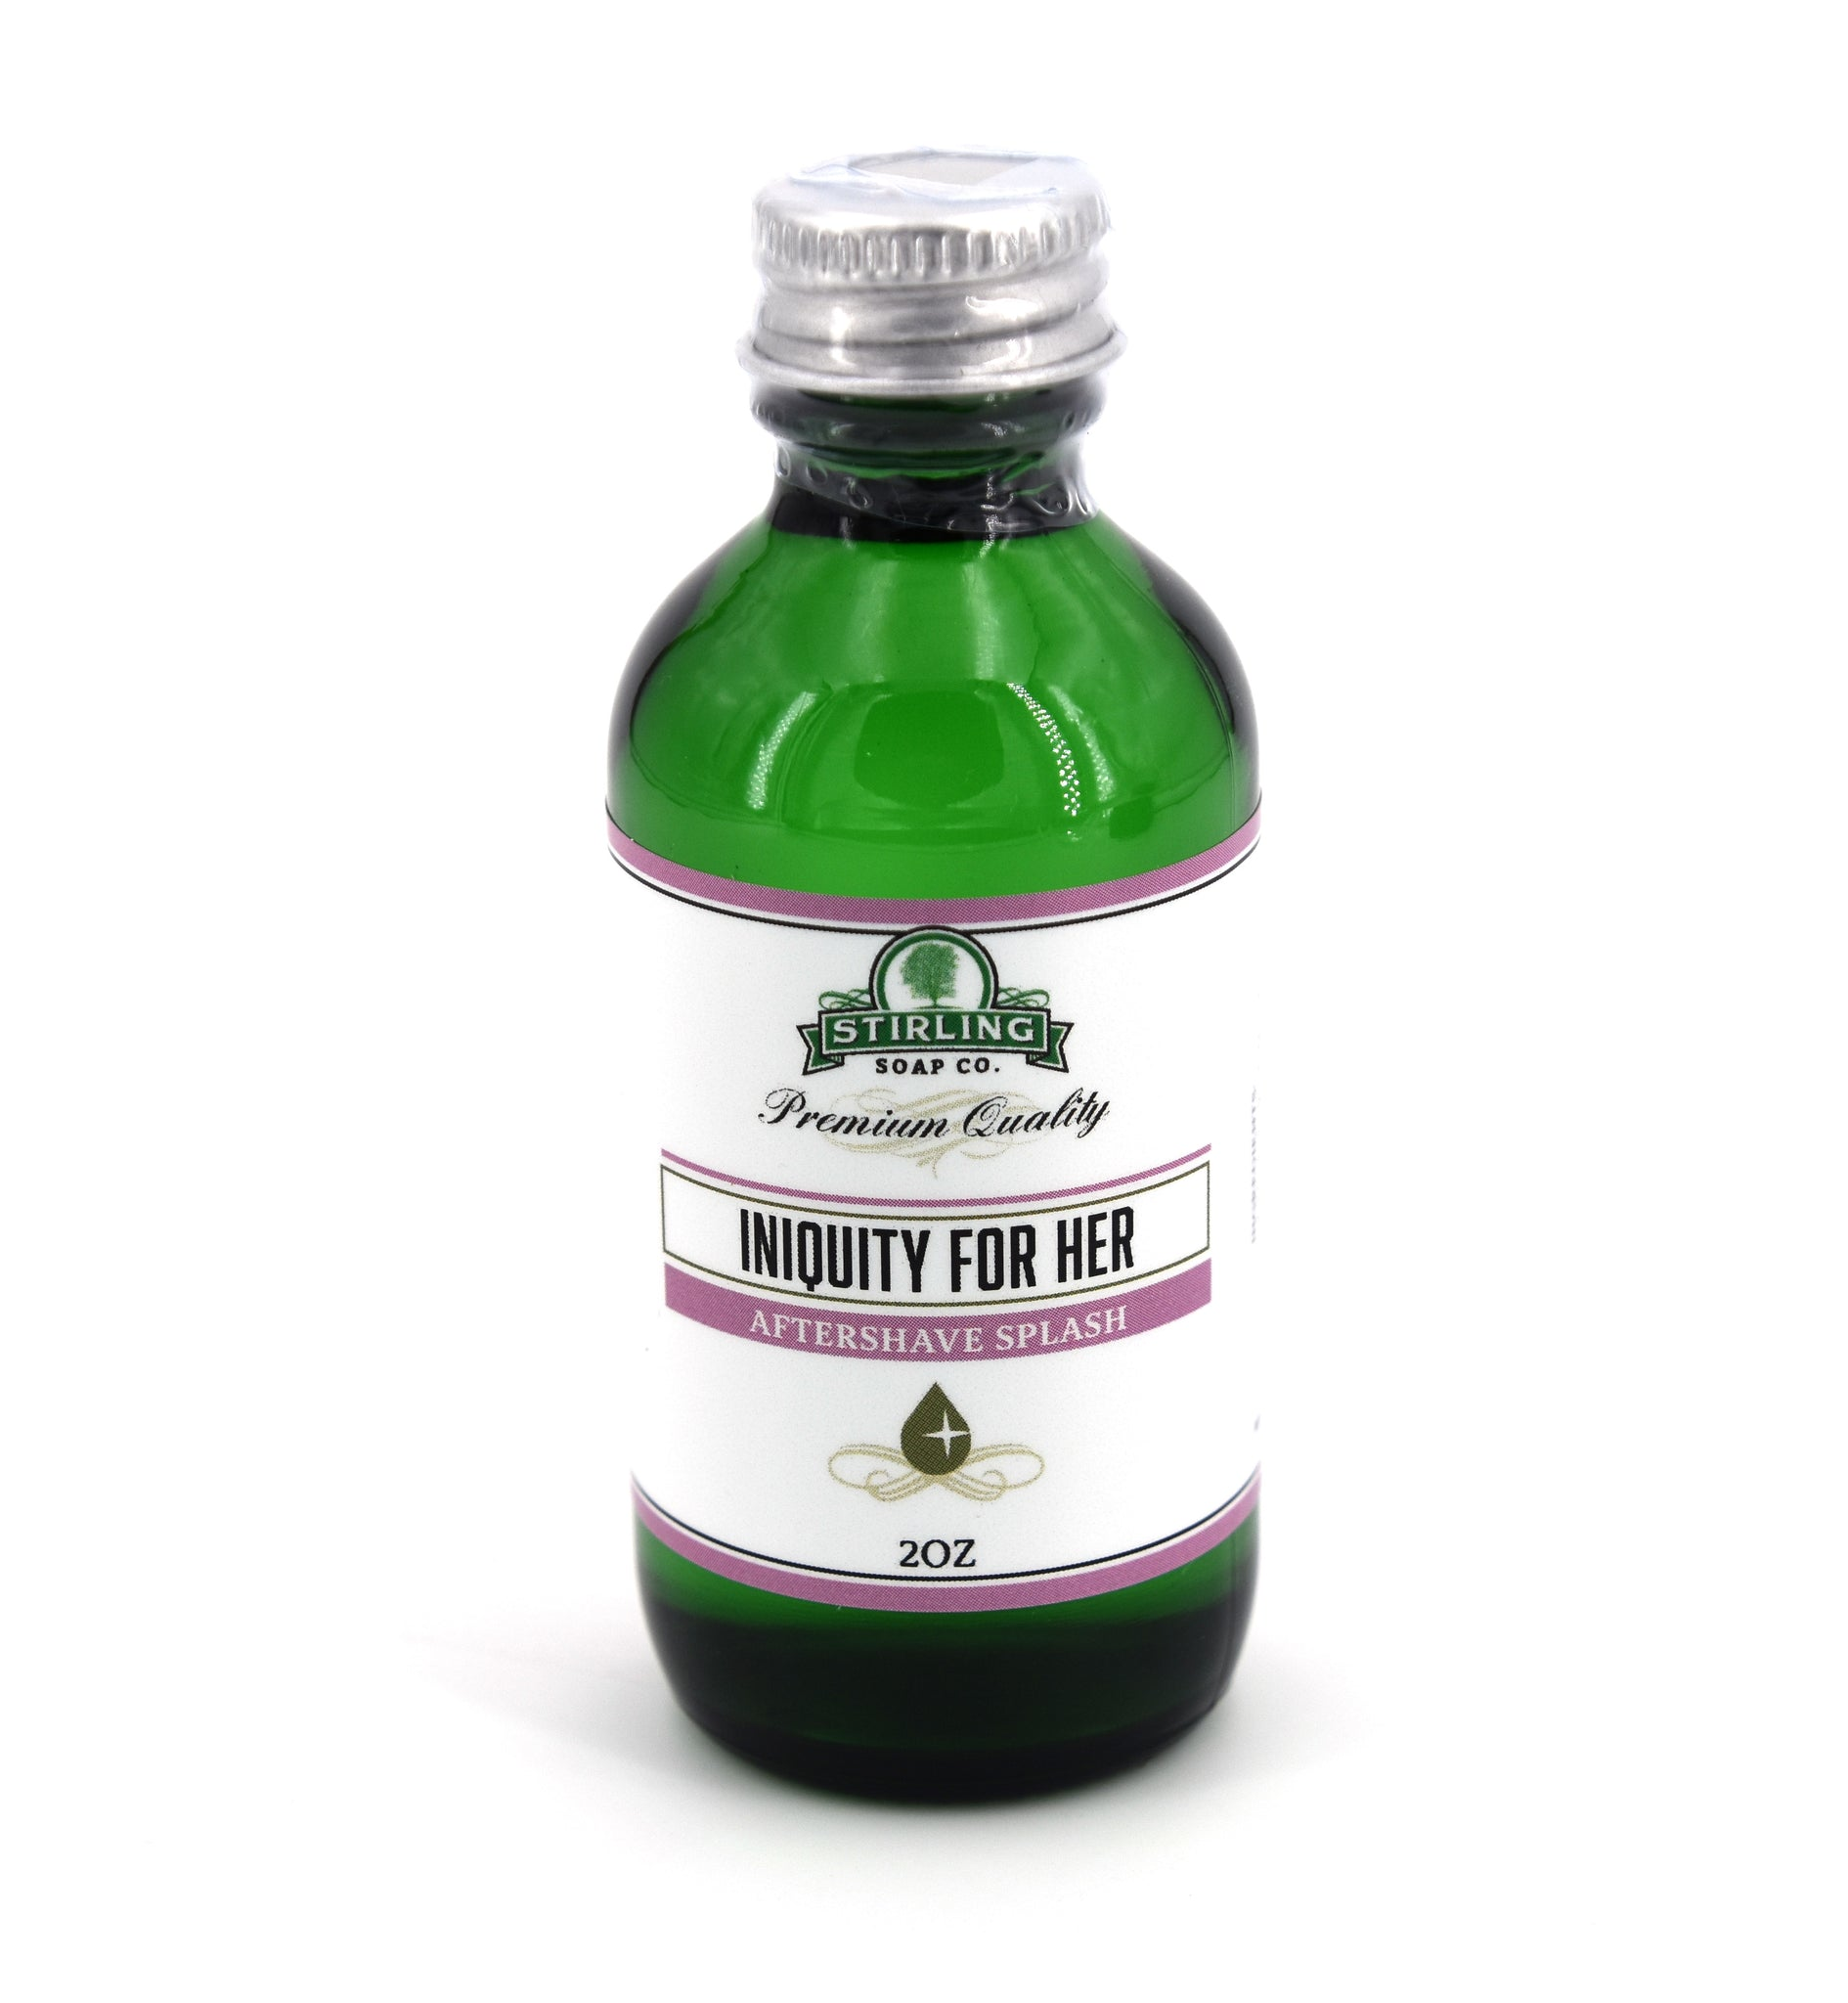 Iniquity for Her - Aftershave Splash (2oz)